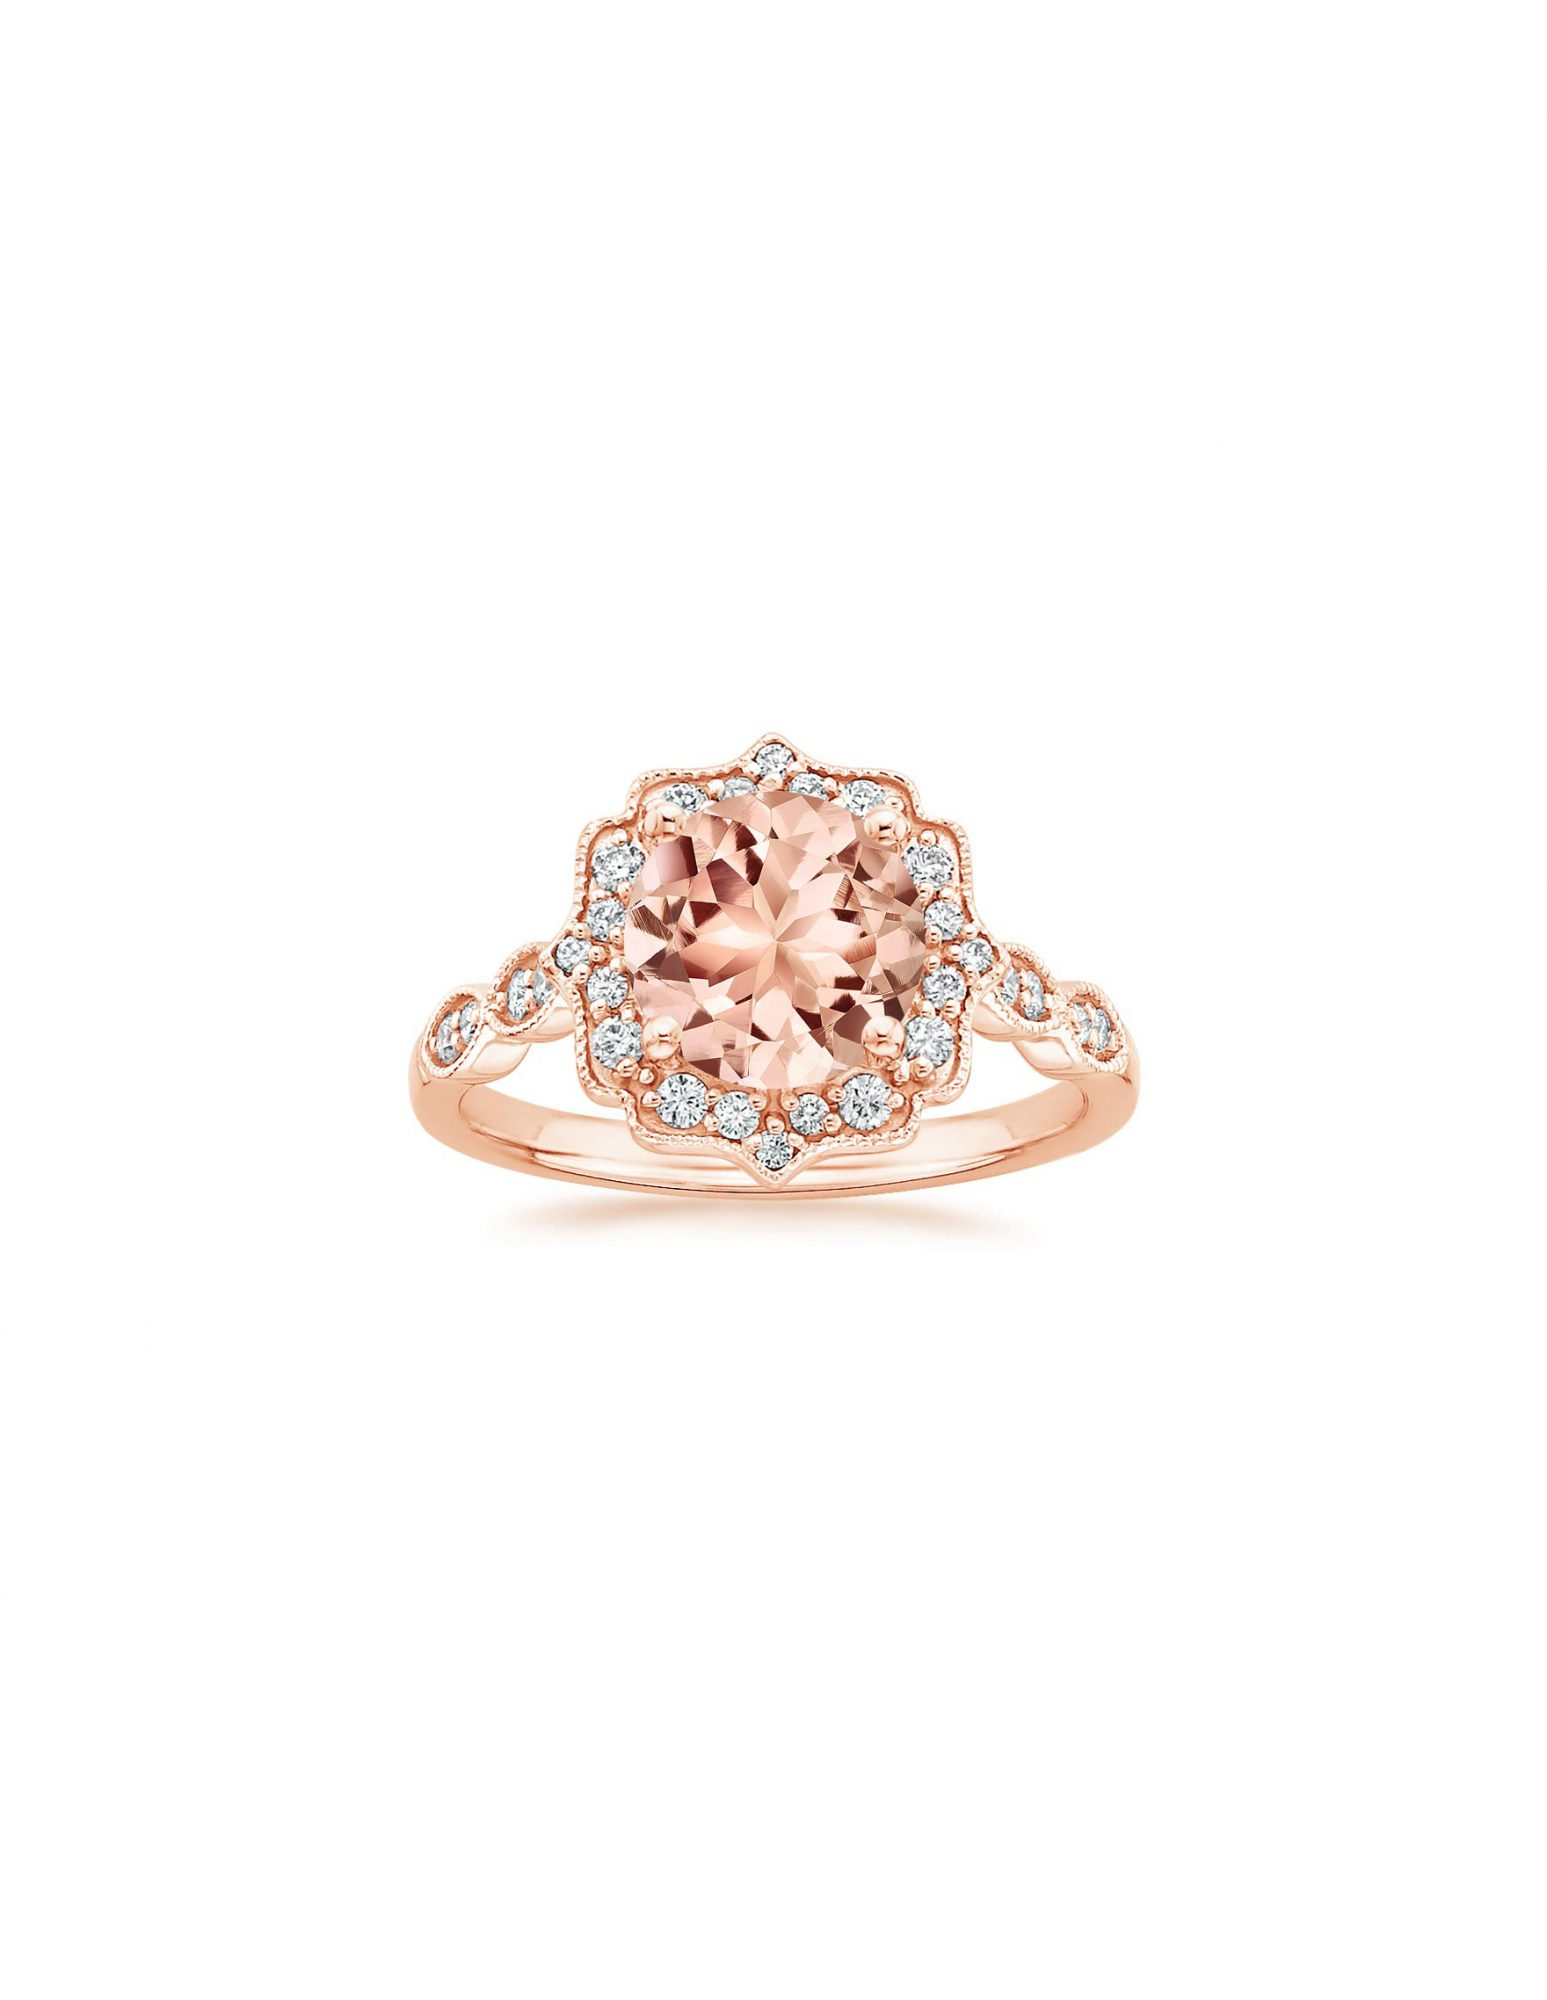 brilliant_earth-morganite-engagnement-ring